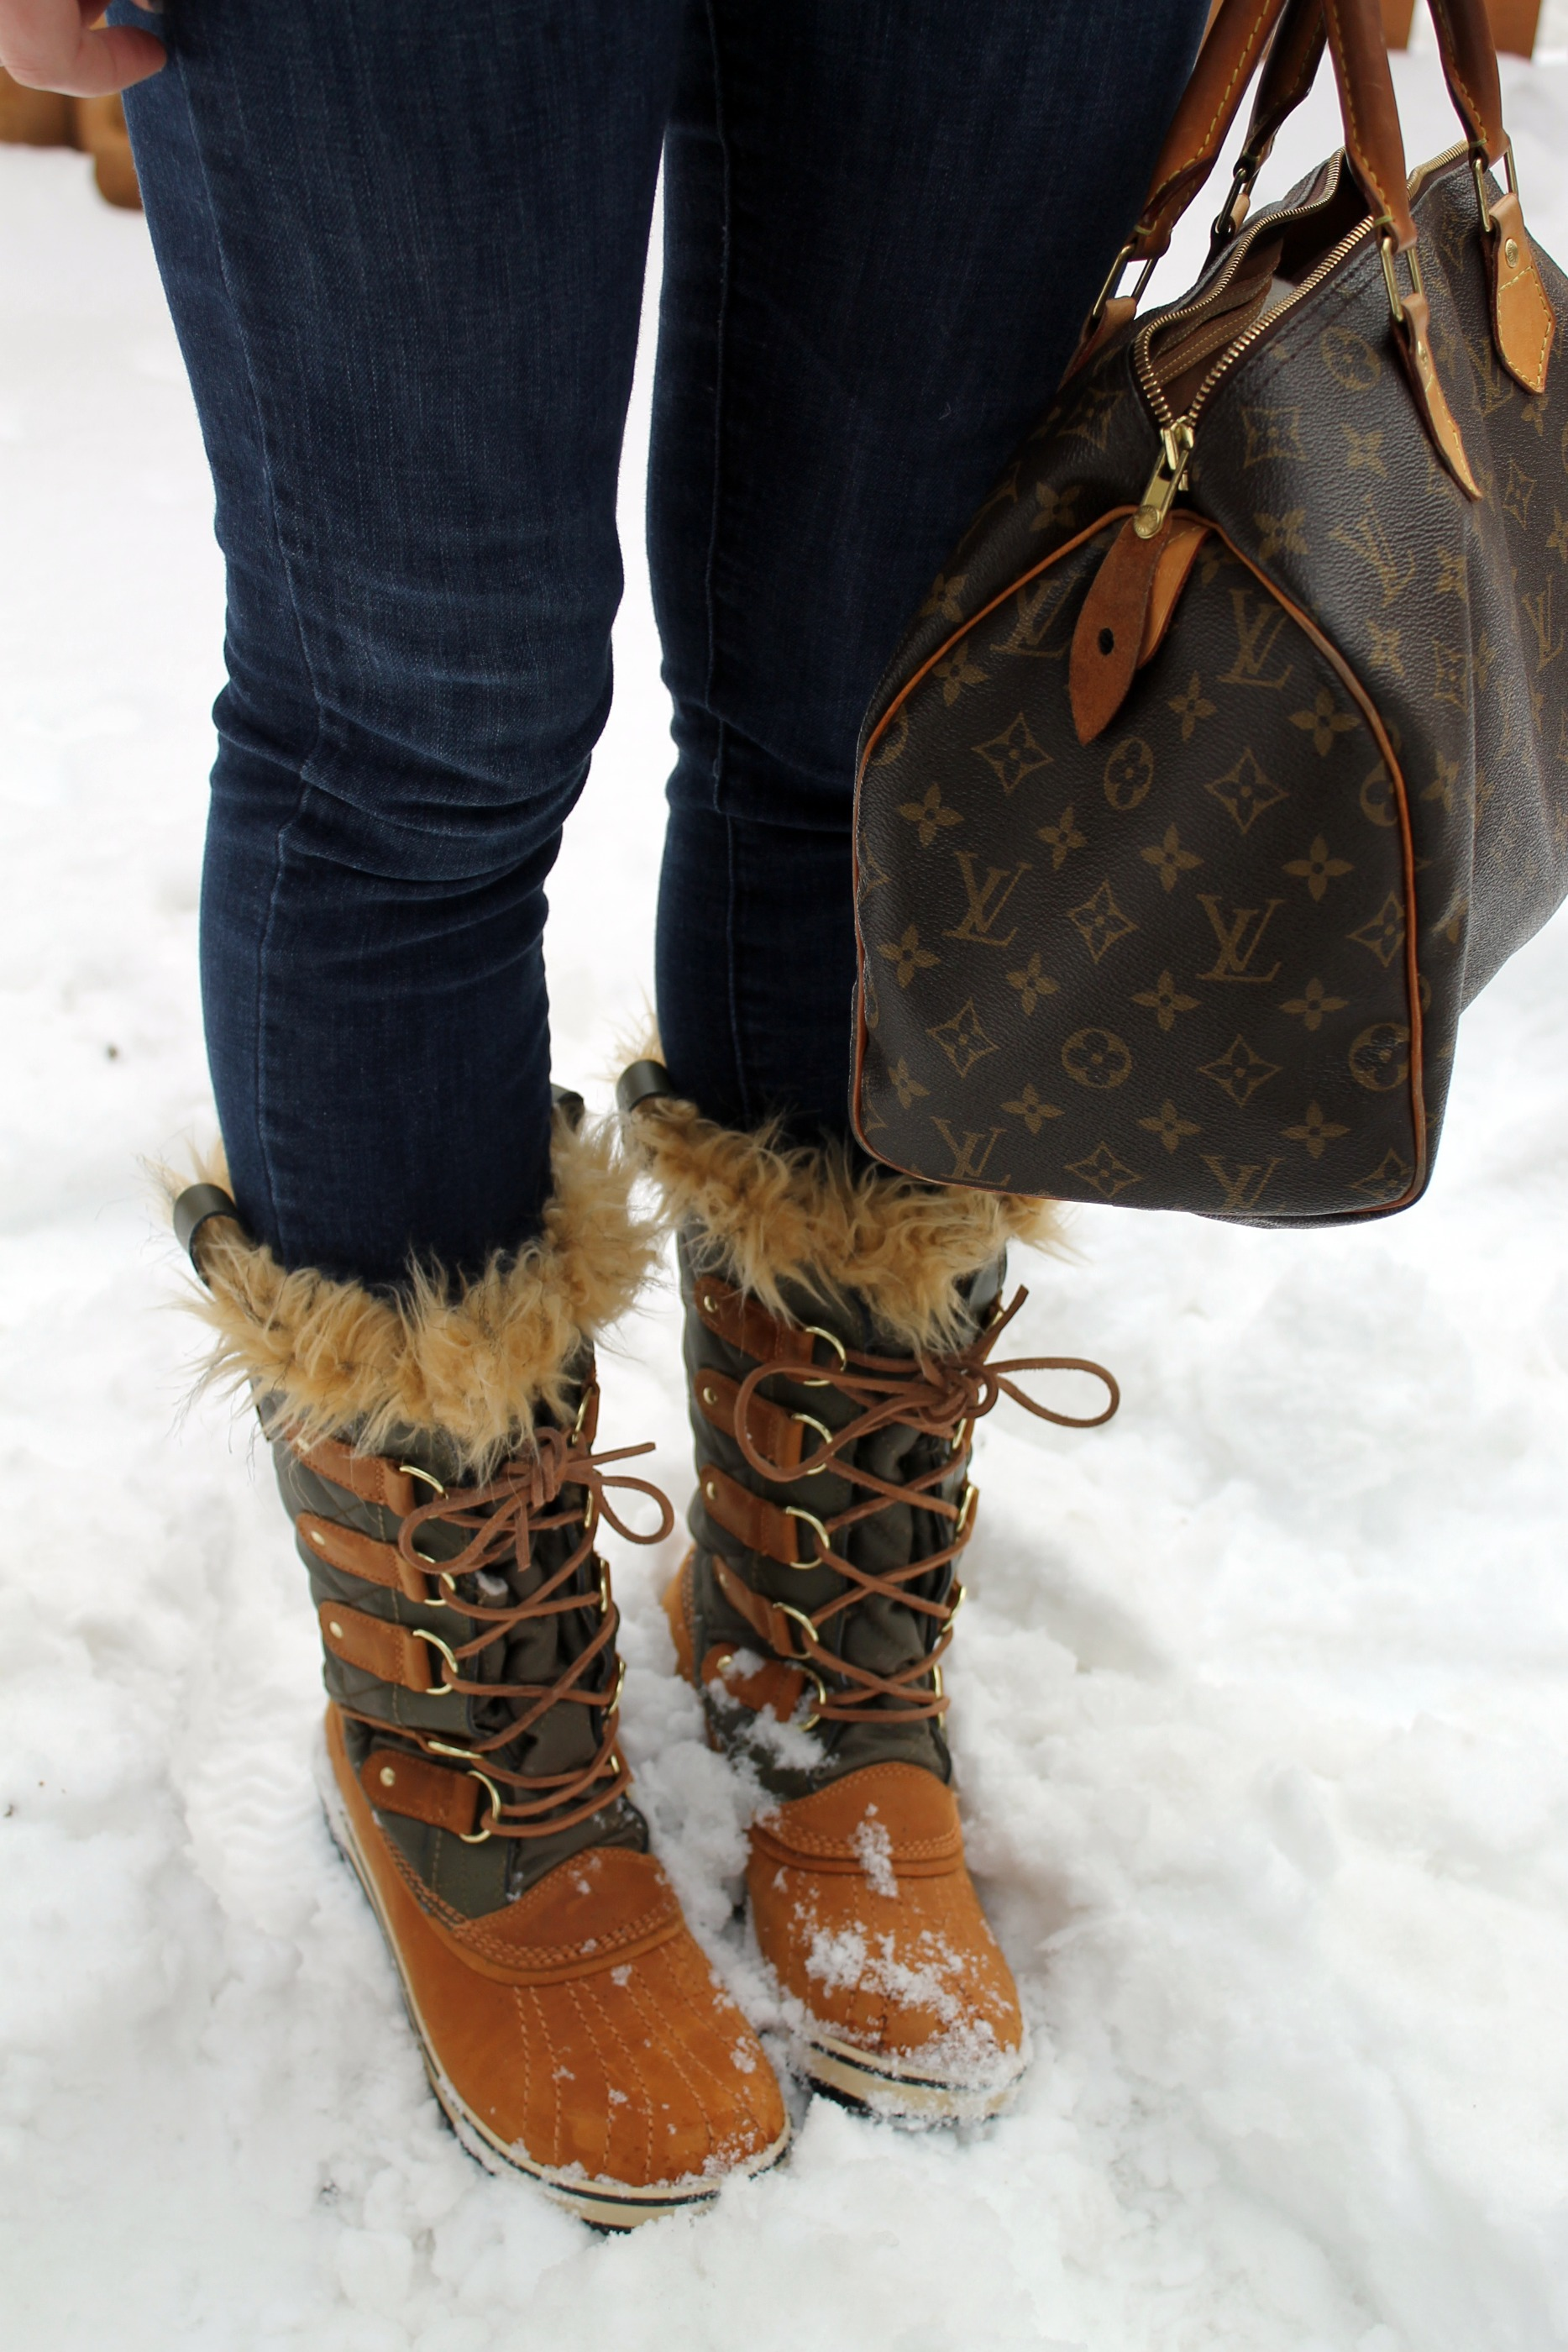 Snow & Sorels — bows & sequins